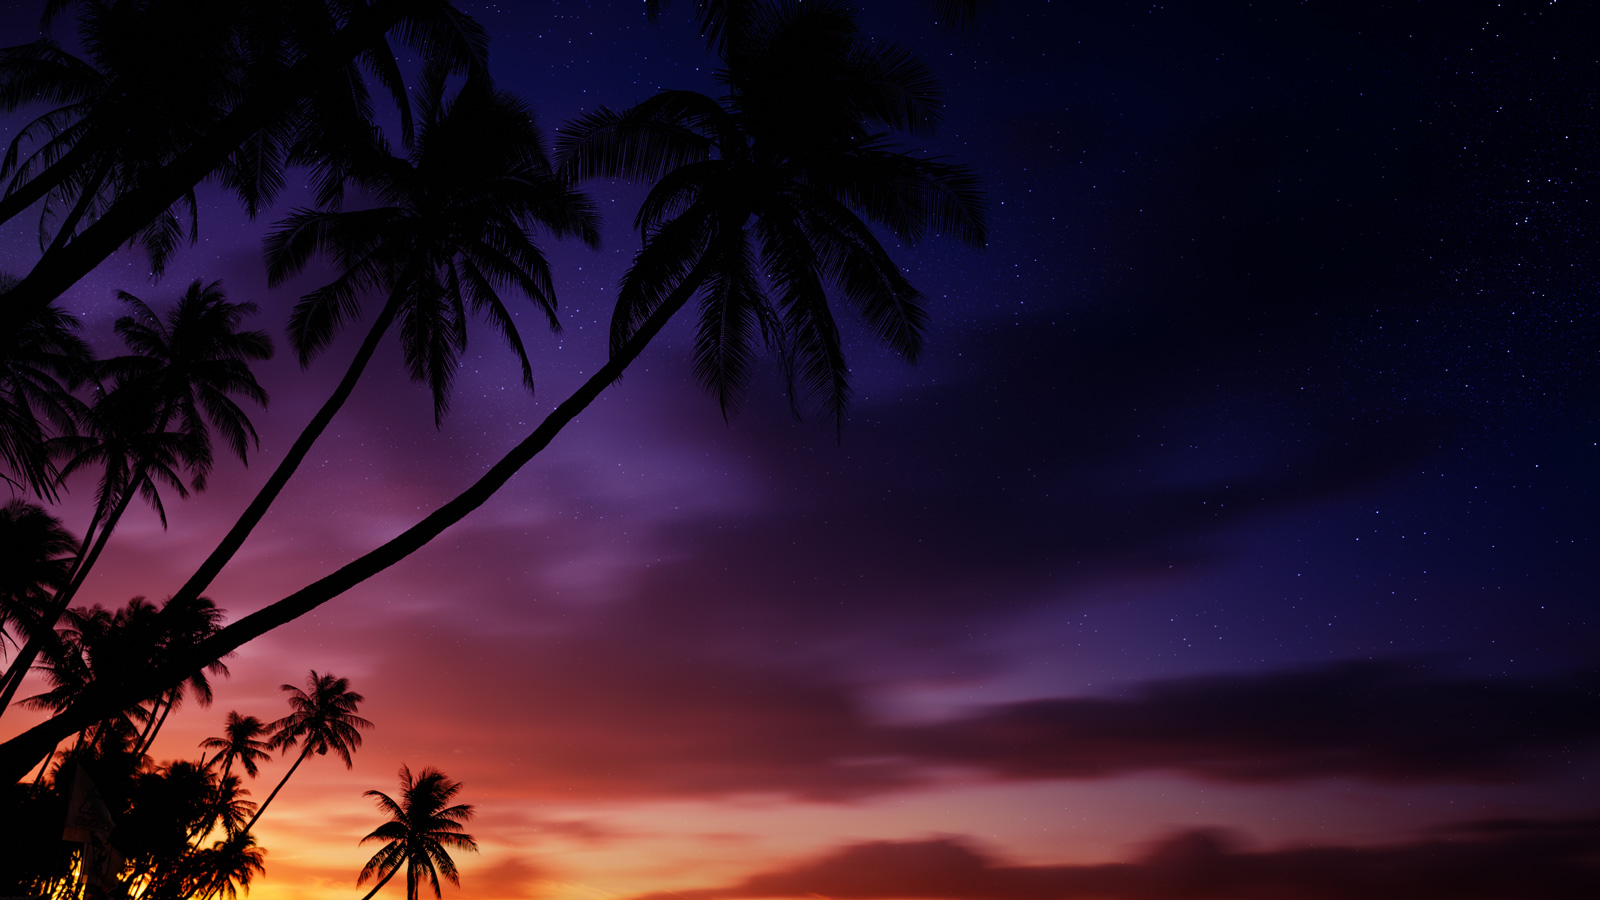 palm tree silhouette in front of twilight sky